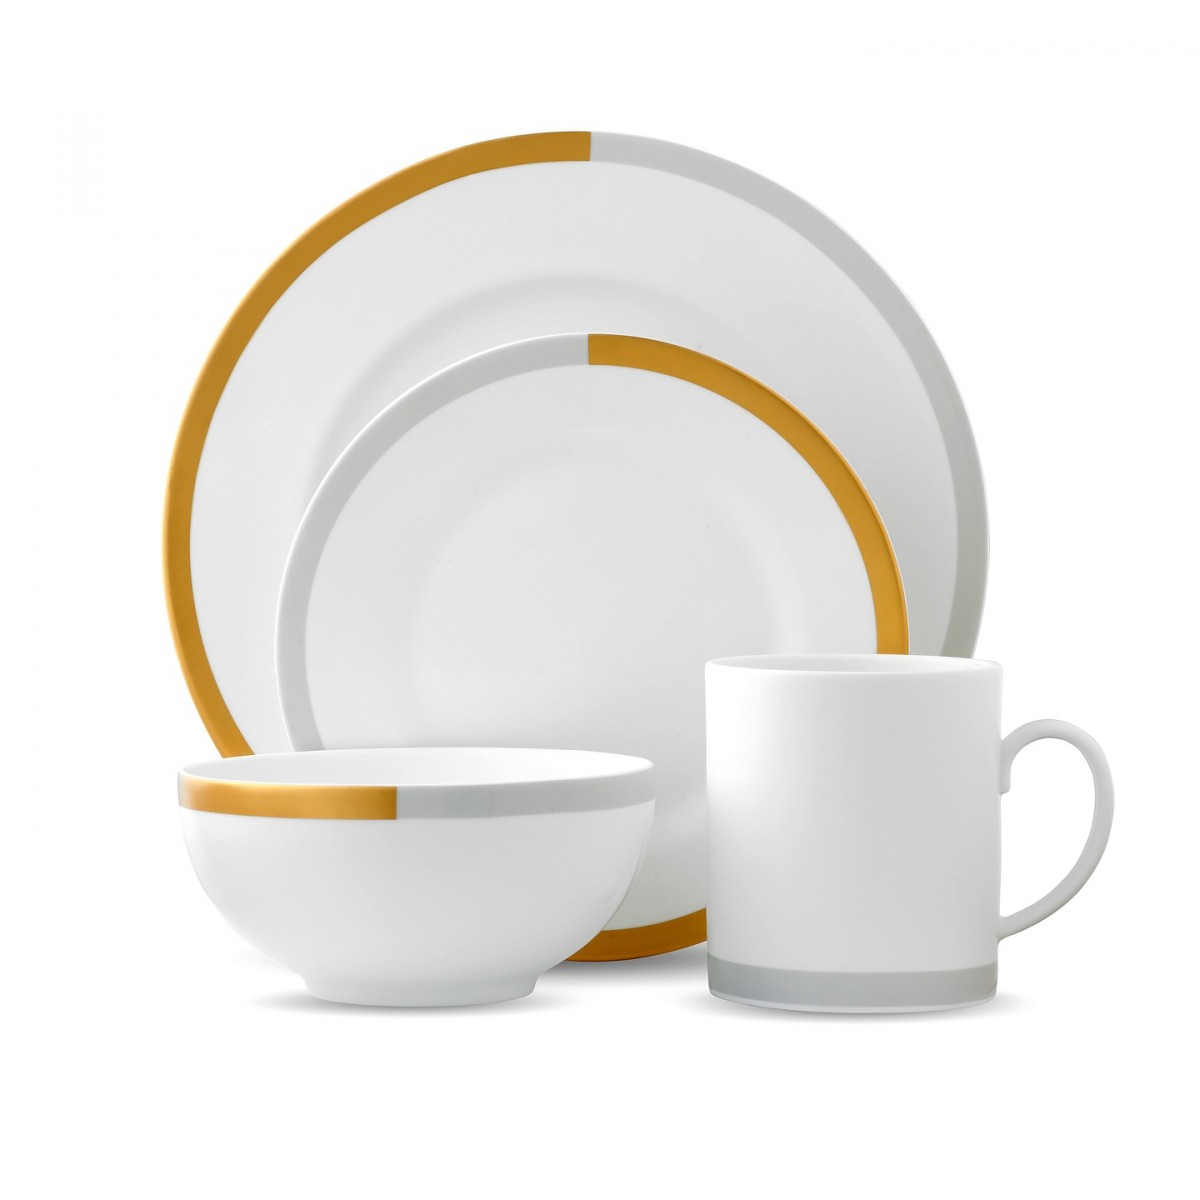 vera-wang-wedgwood-vera-castillon-gold-gray-4-piece-place-setting-701587317108.jpg